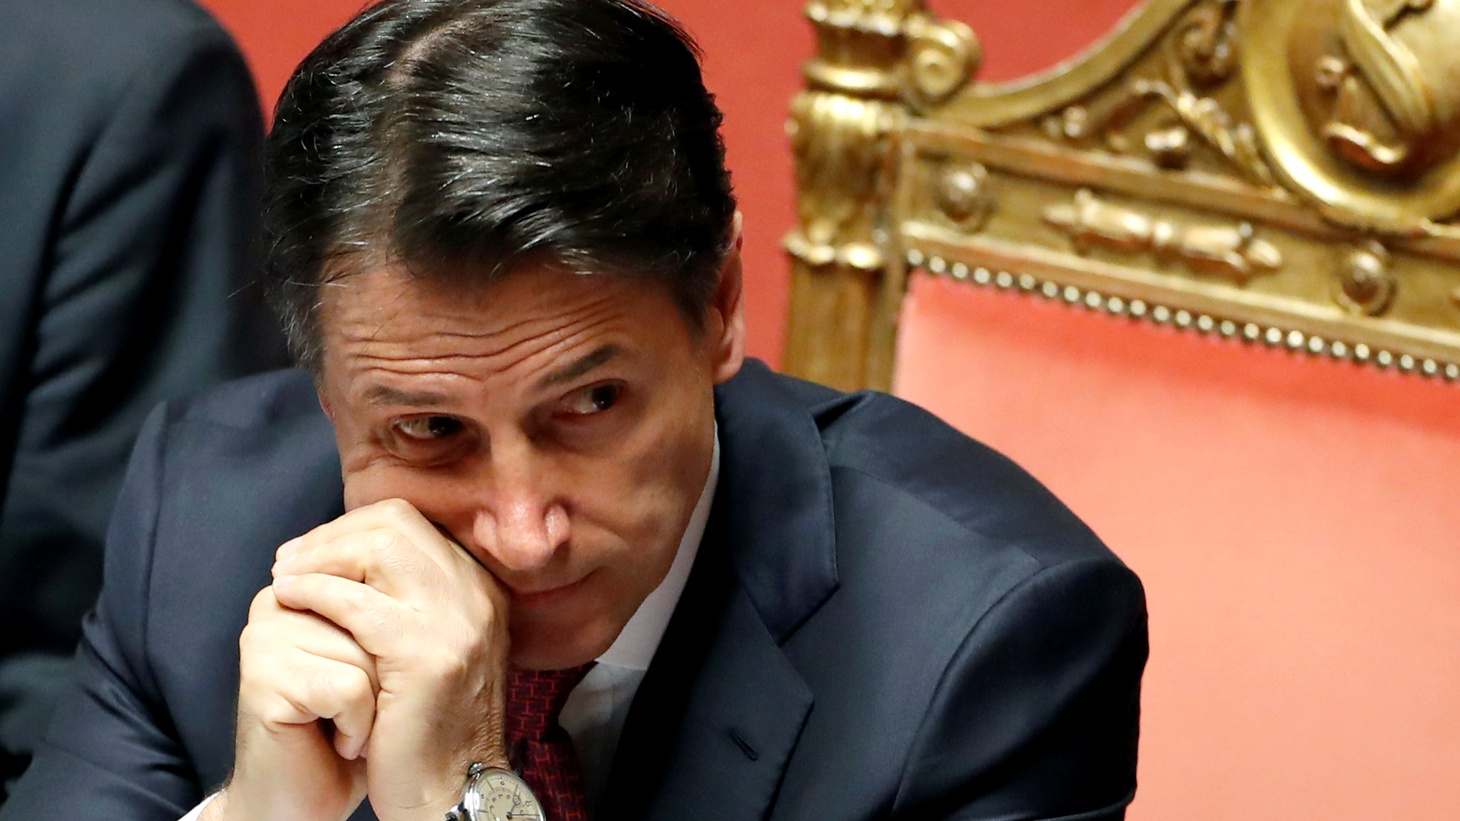 Italian Prime Minister Giuseppe Conte attends a session of the upper house of parliament over the ongoing government crisis, in Rome, Italy, August 20, 2019.